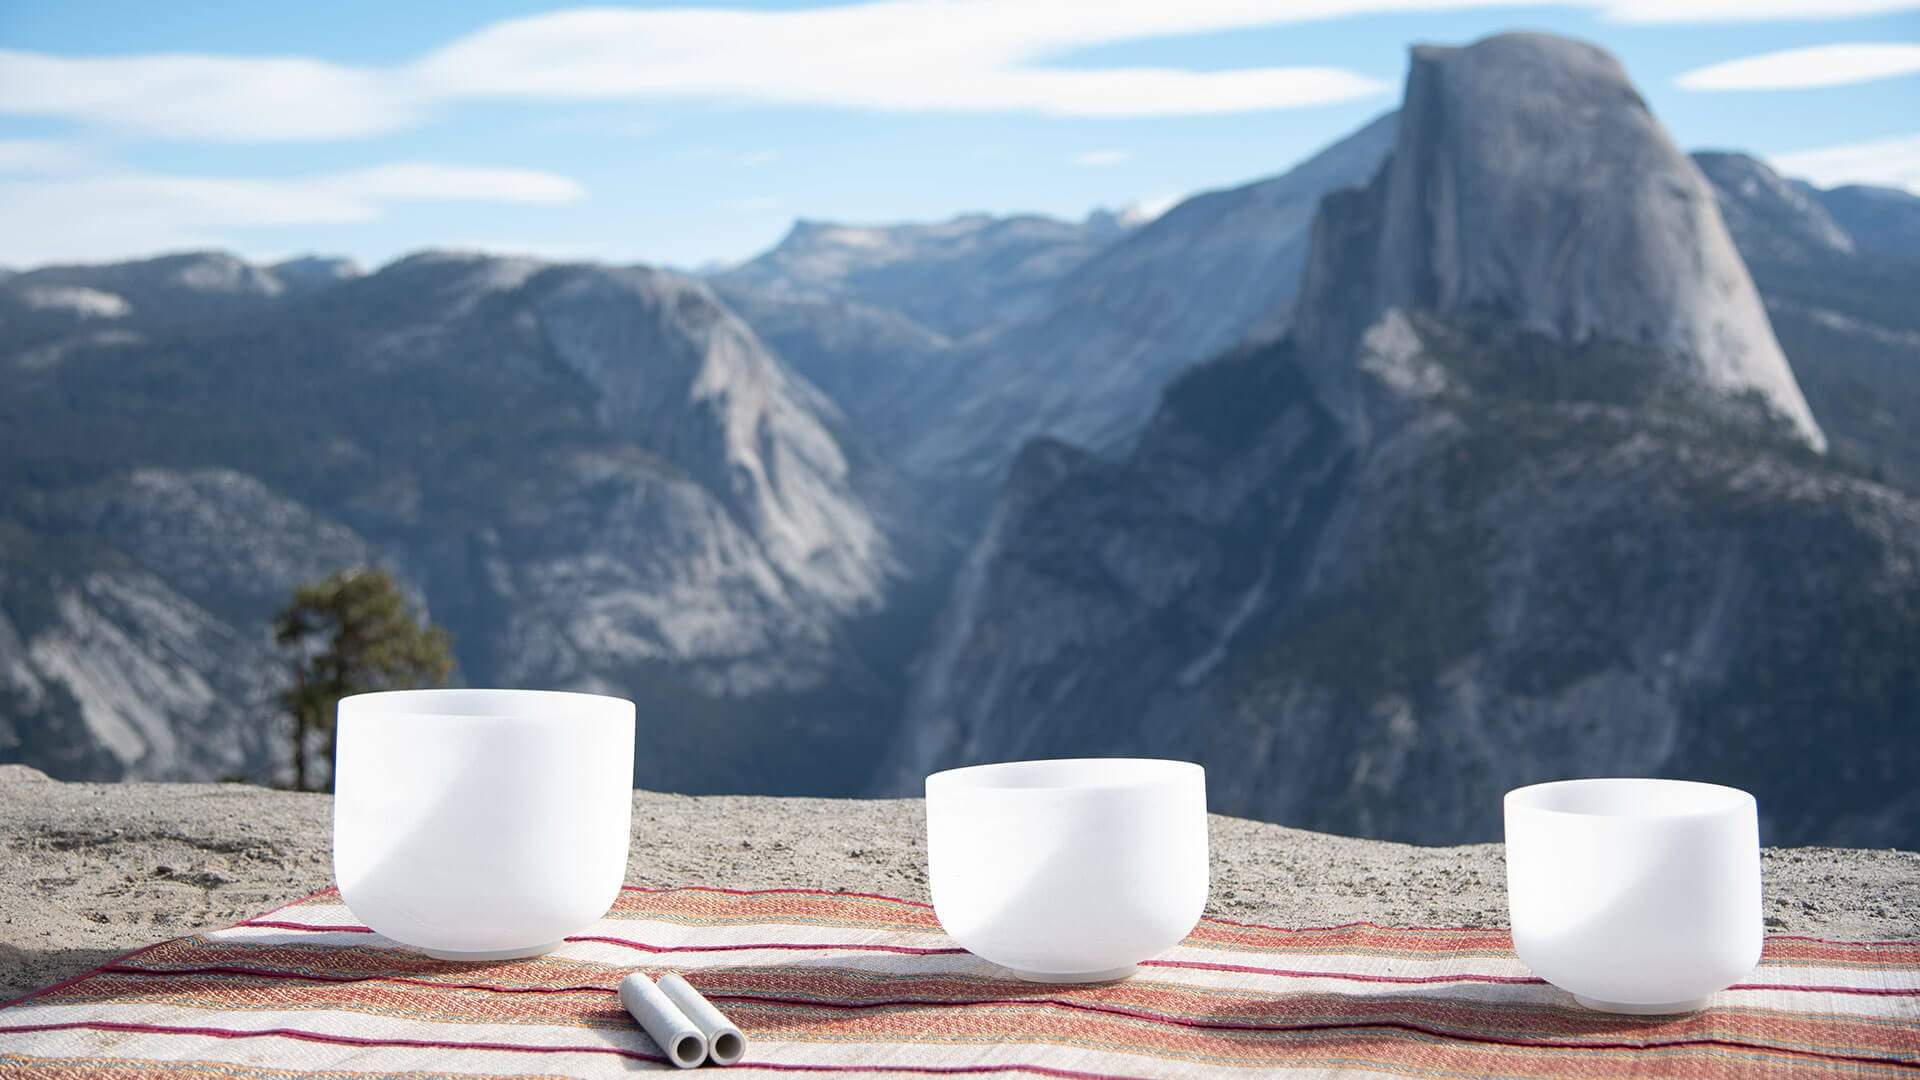 Three Crystal Sining Bowls In Yosemite